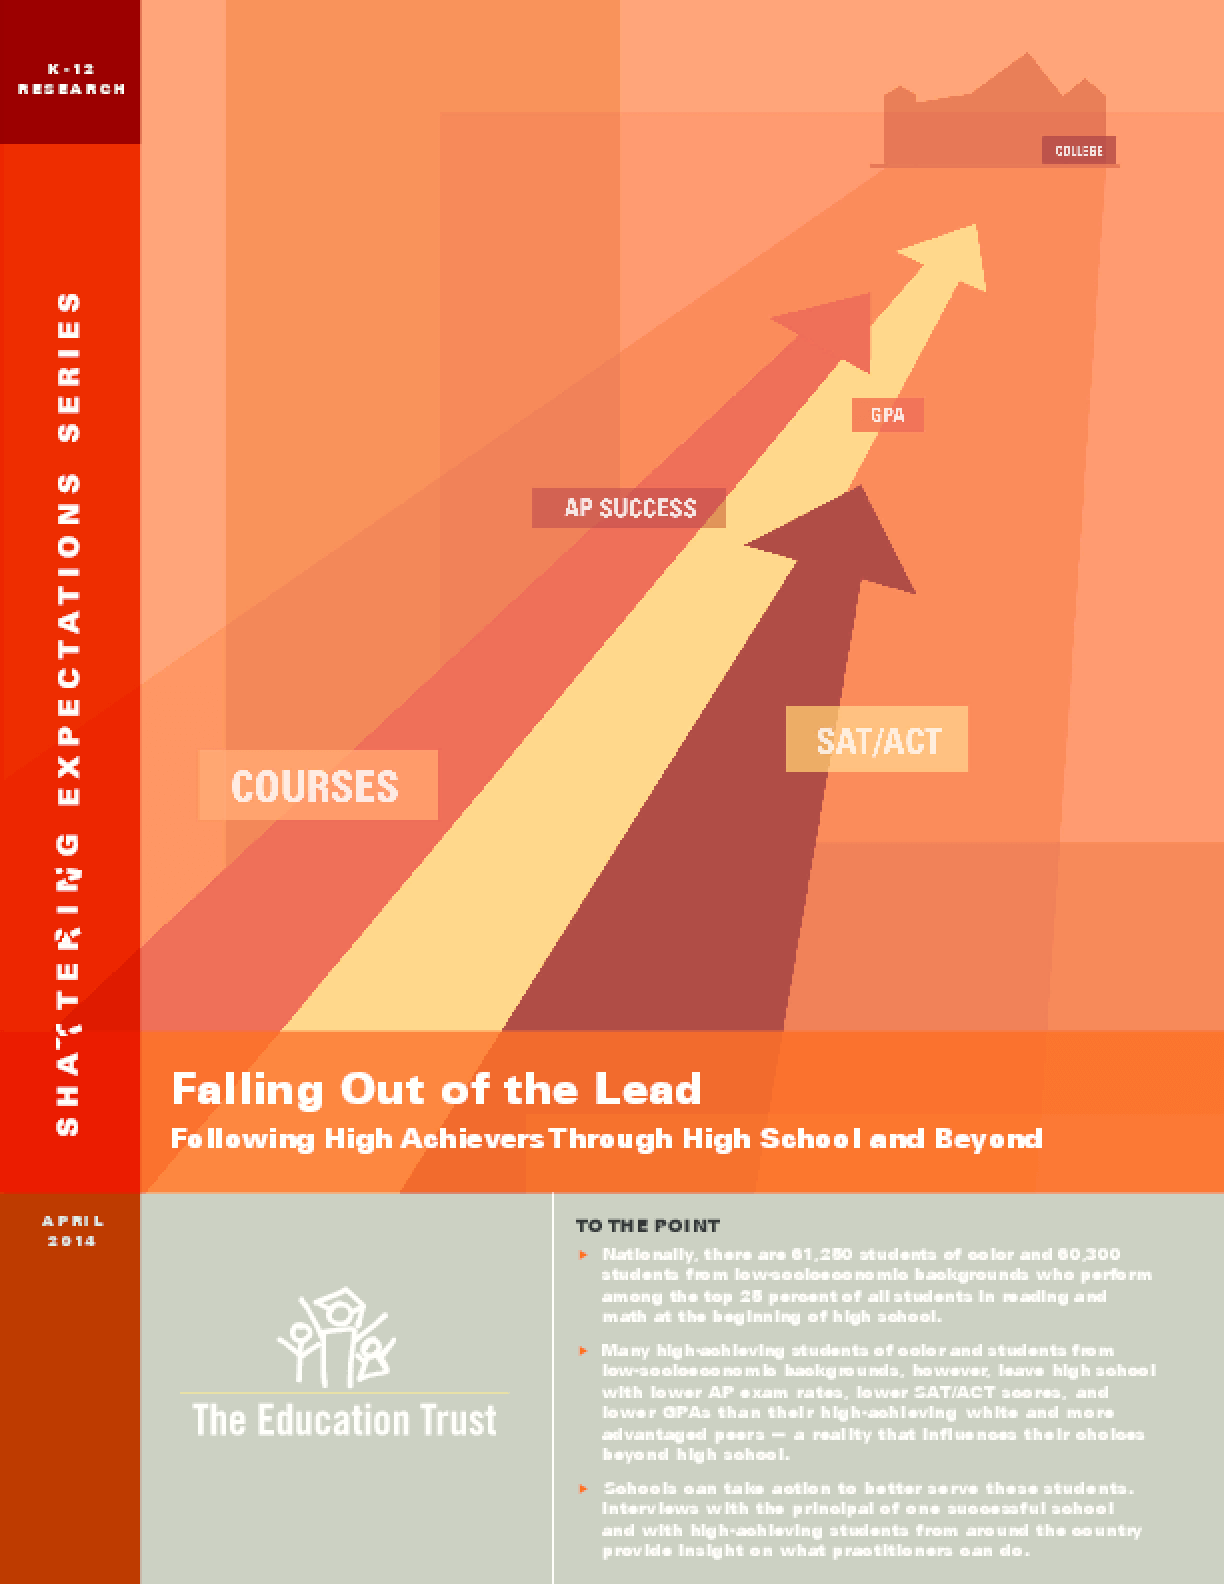 Falling Out of the Lead: Following High Achievers Through High School and Beyond